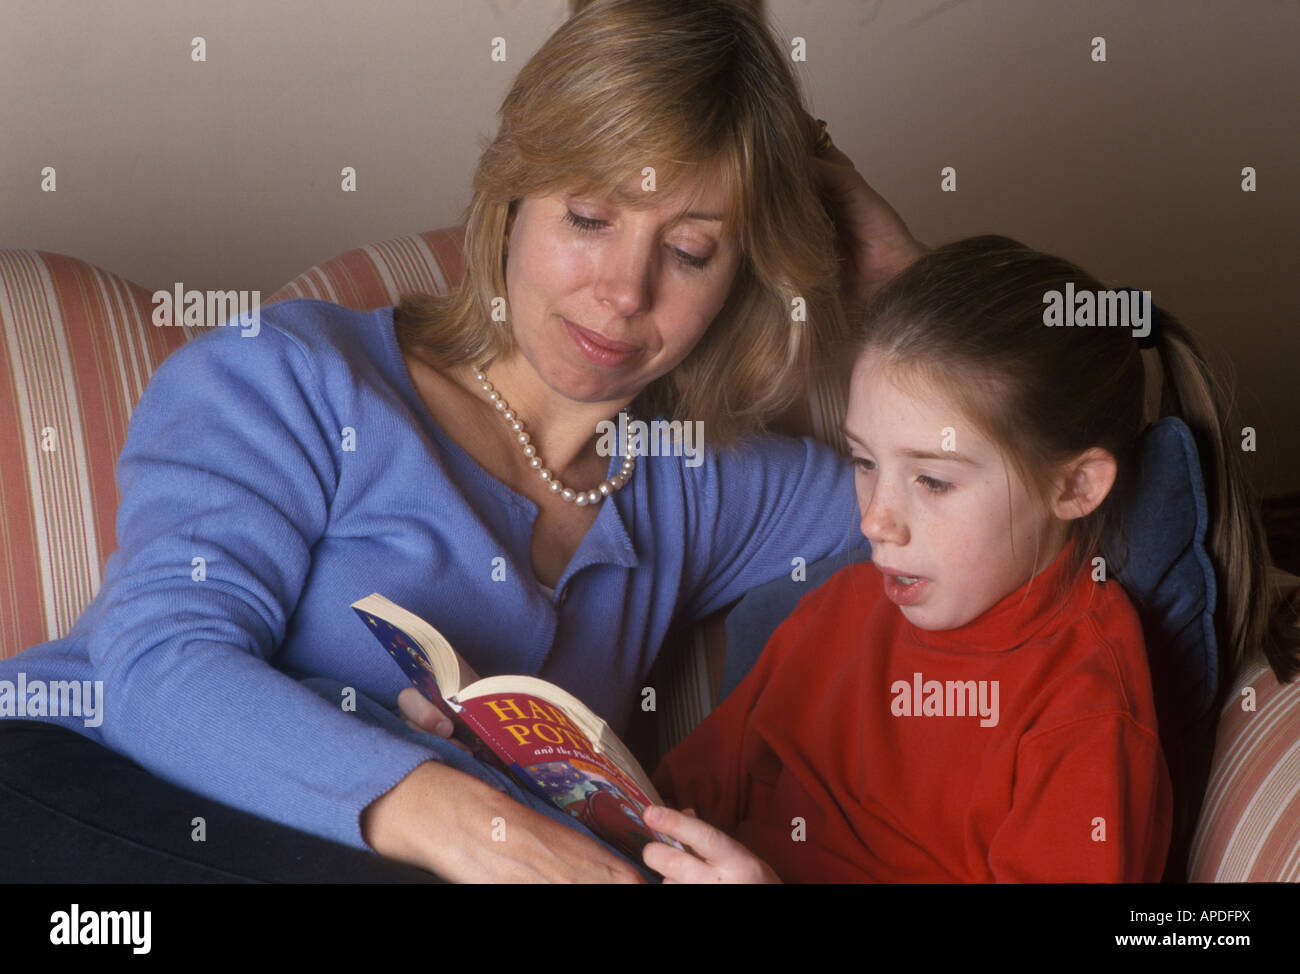 parent and child reading together - Stock Image